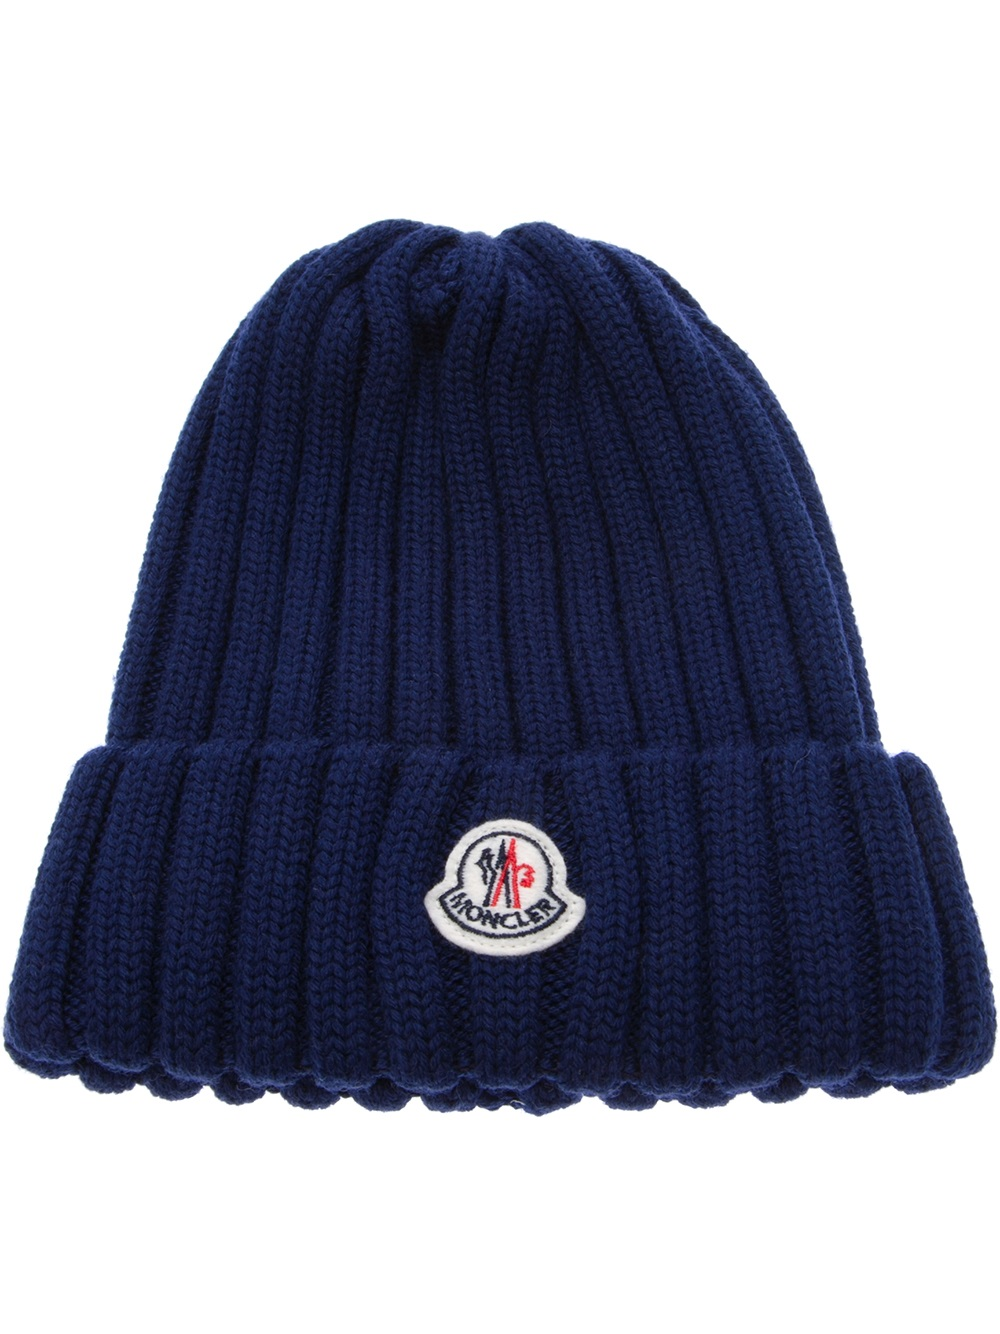 440b760f169 Lyst - Moncler Wool Ribbed Knit Beanie Hat in Blue for Men